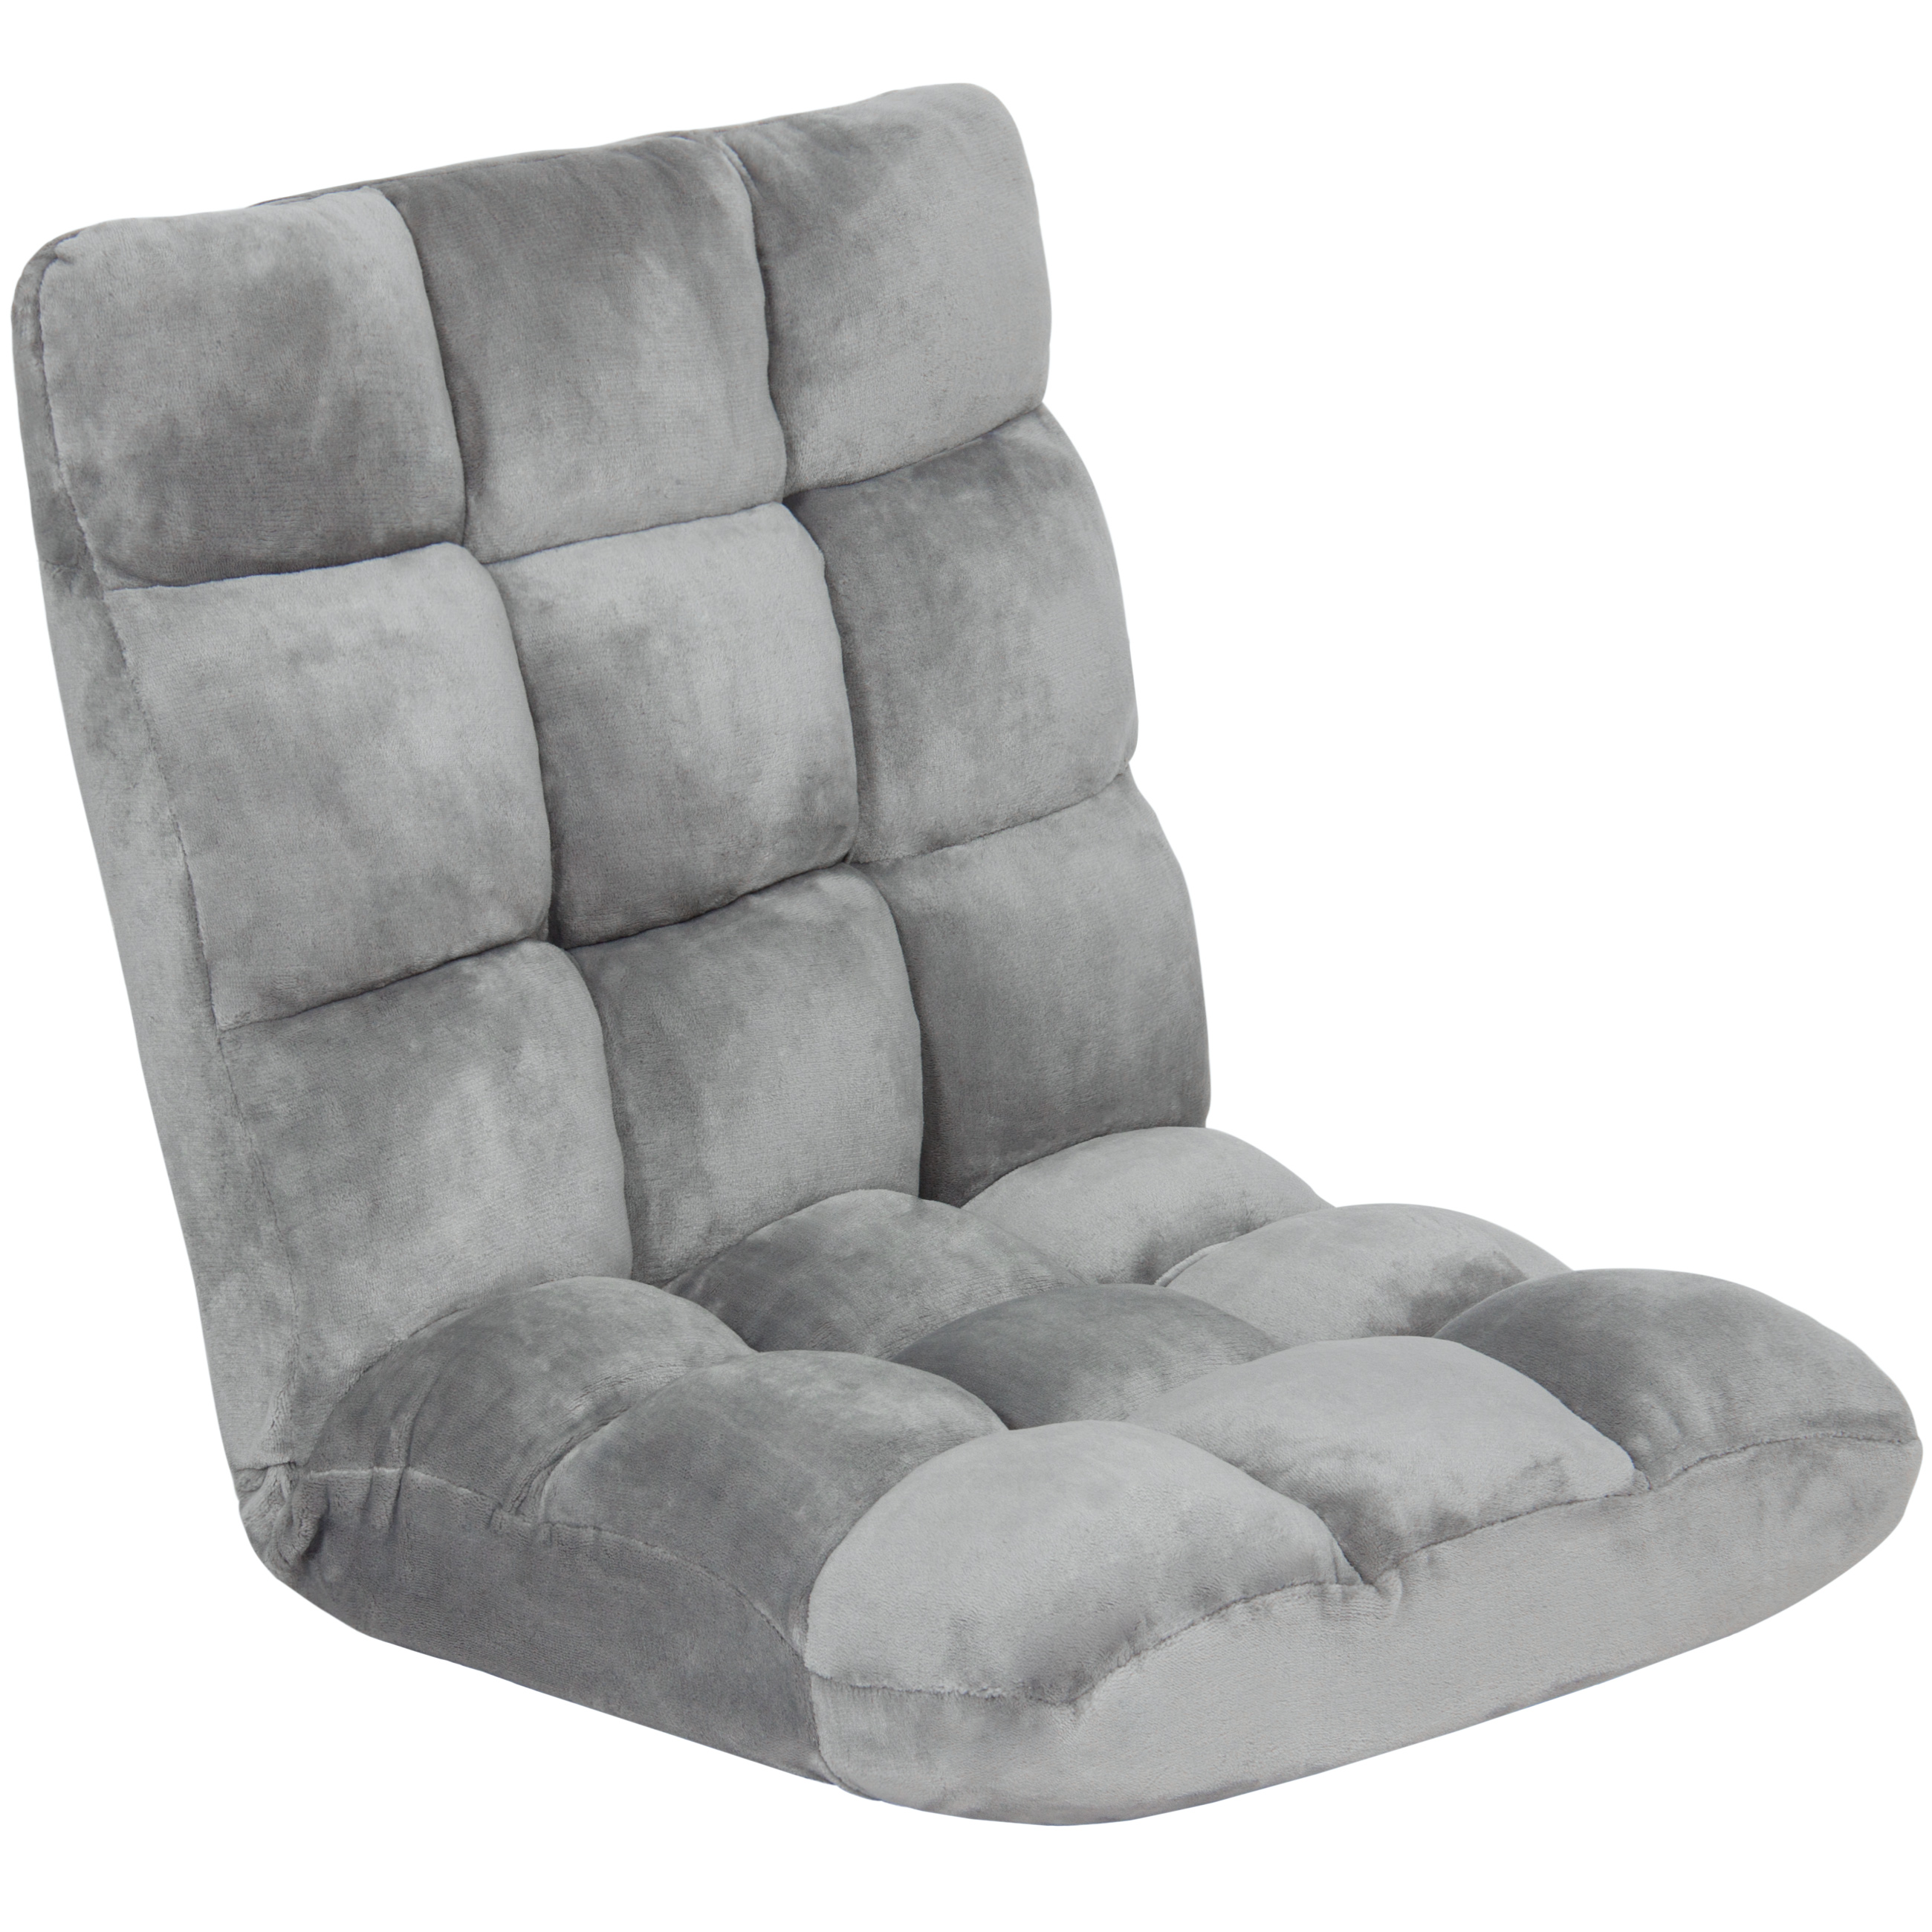 Best Choice Products 14-Position Memory Foam Cushioned Floor Gaming Chair - Gray